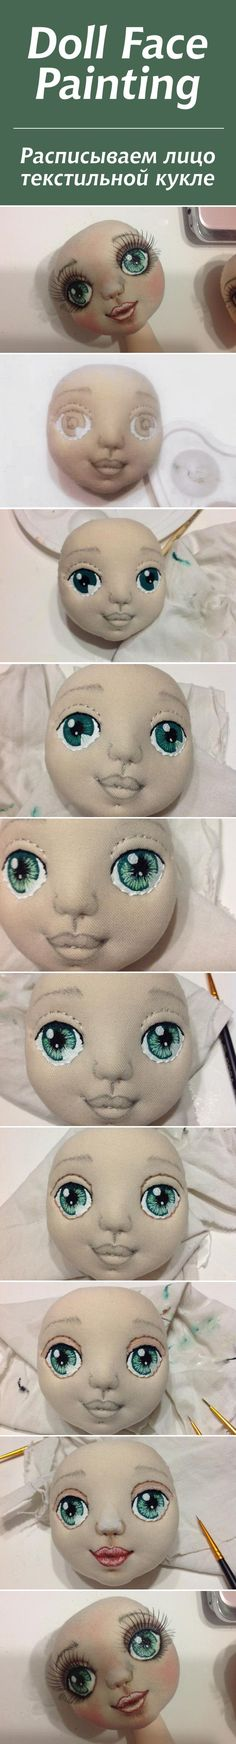 cloth doll face painting not in English but easy to understand, love the eyelashes Doll Face Paint, Doll Painting, Mask Painting, Bjd Doll, Clay Dolls, Doll Clothes Patterns, Doll Patterns, Fabric Dolls, Paper Dolls